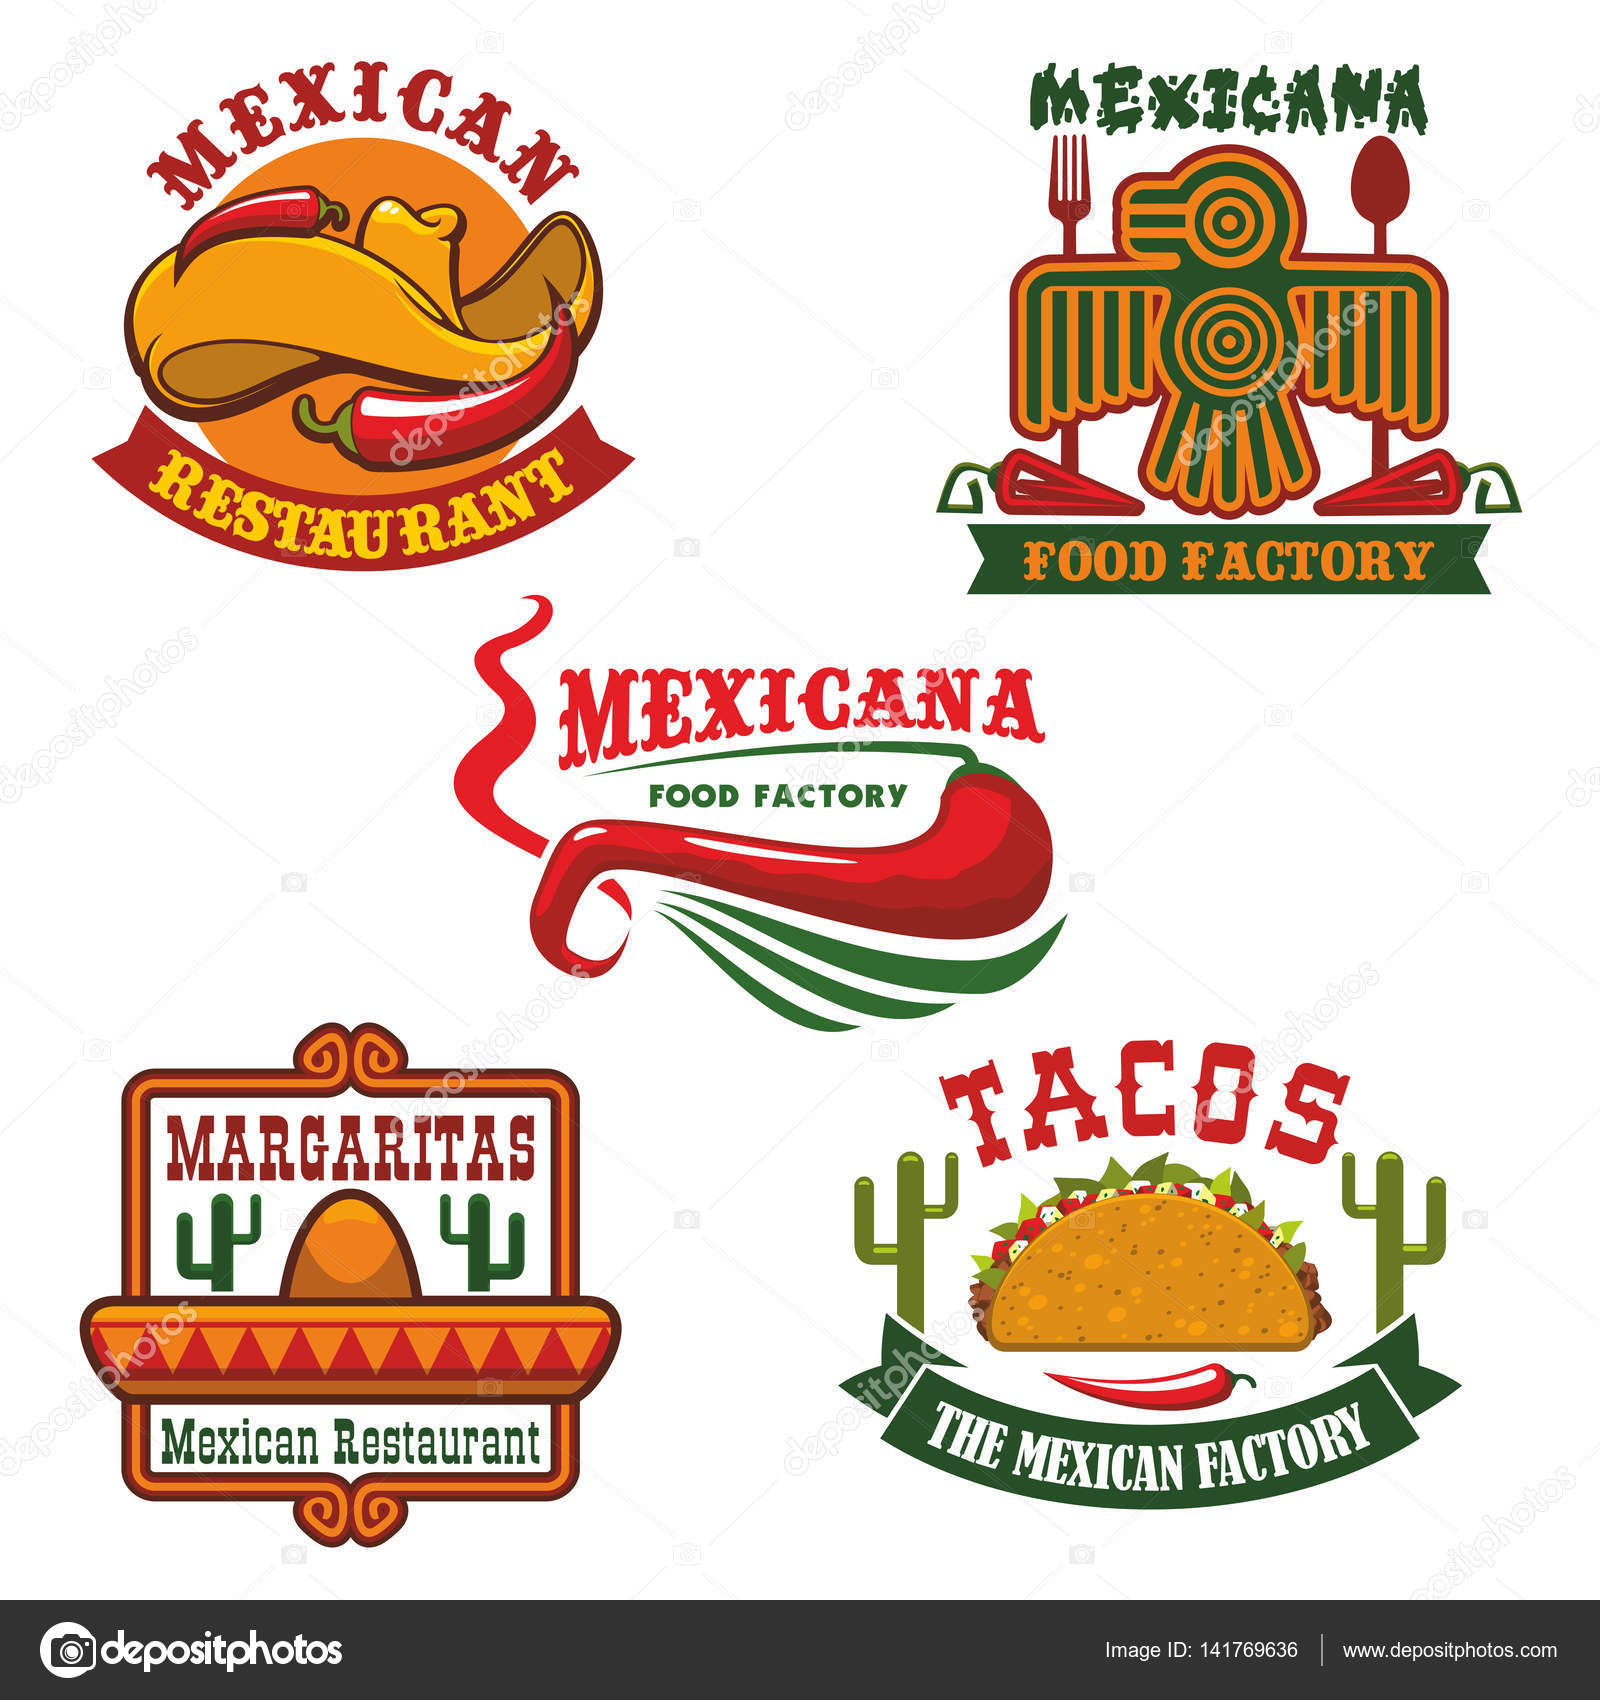 Are Tacos And Burritos Mexican Food